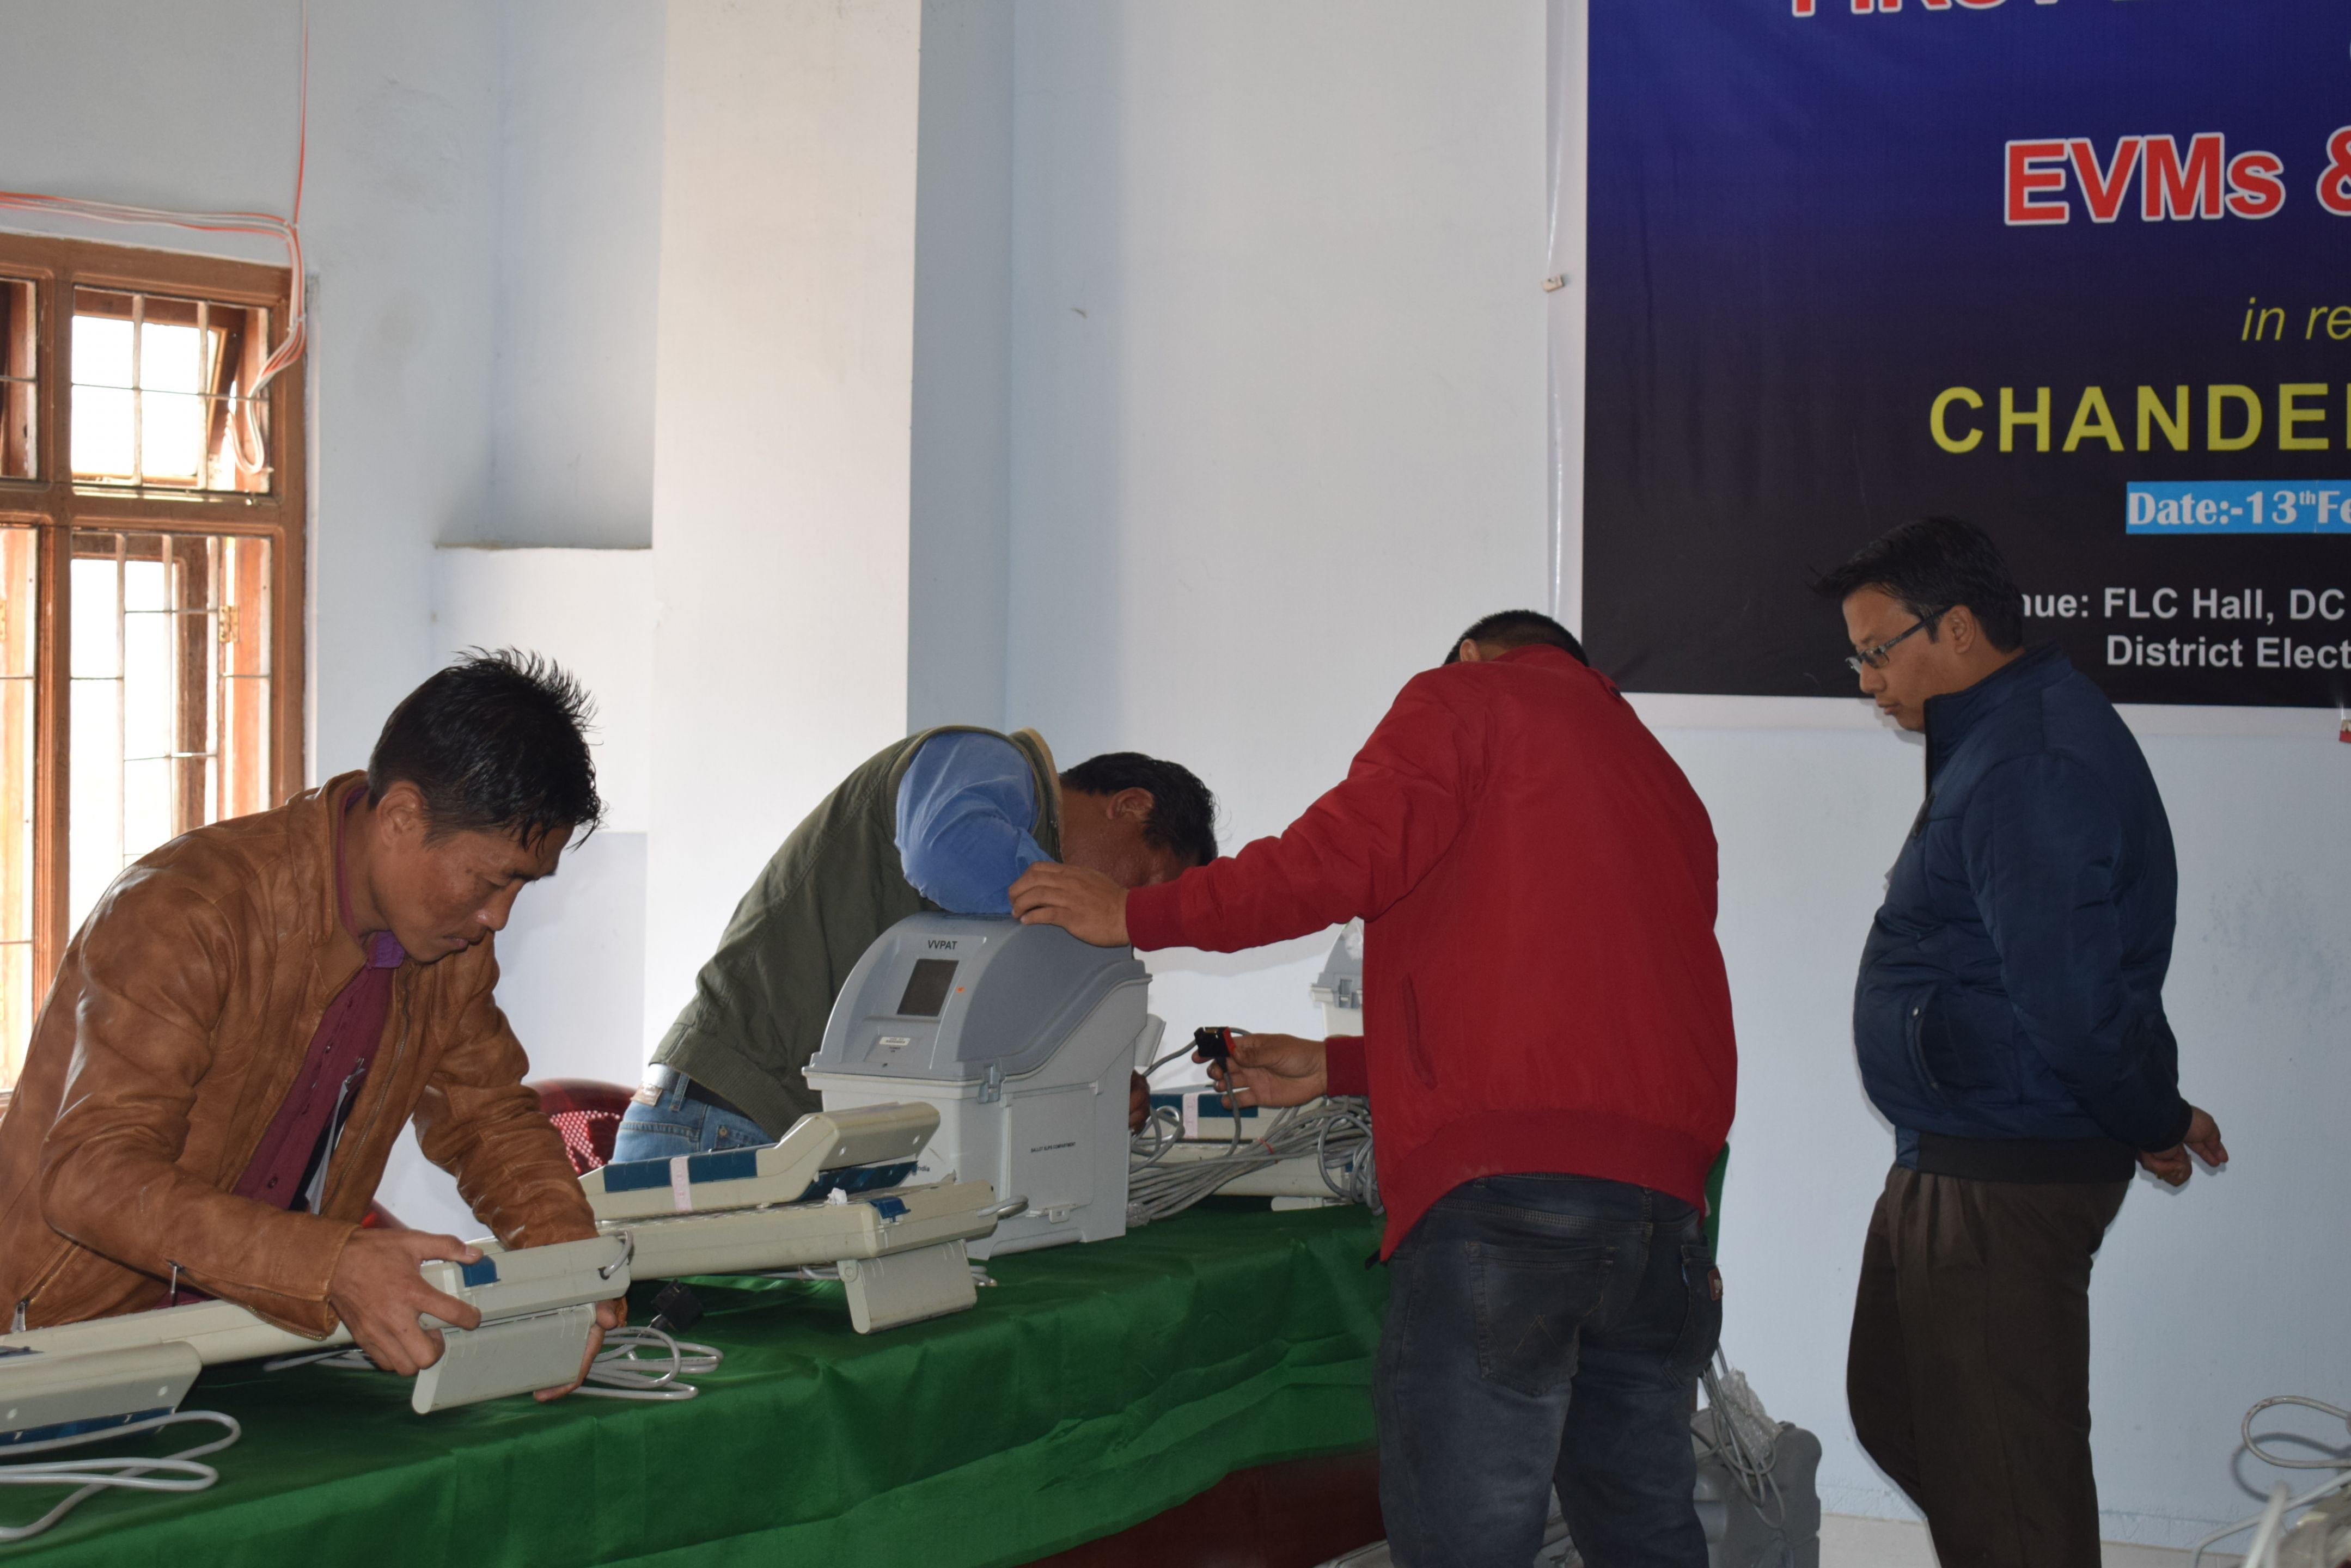 First Level Checking of EVM & VVPATs for Chandel District (2)